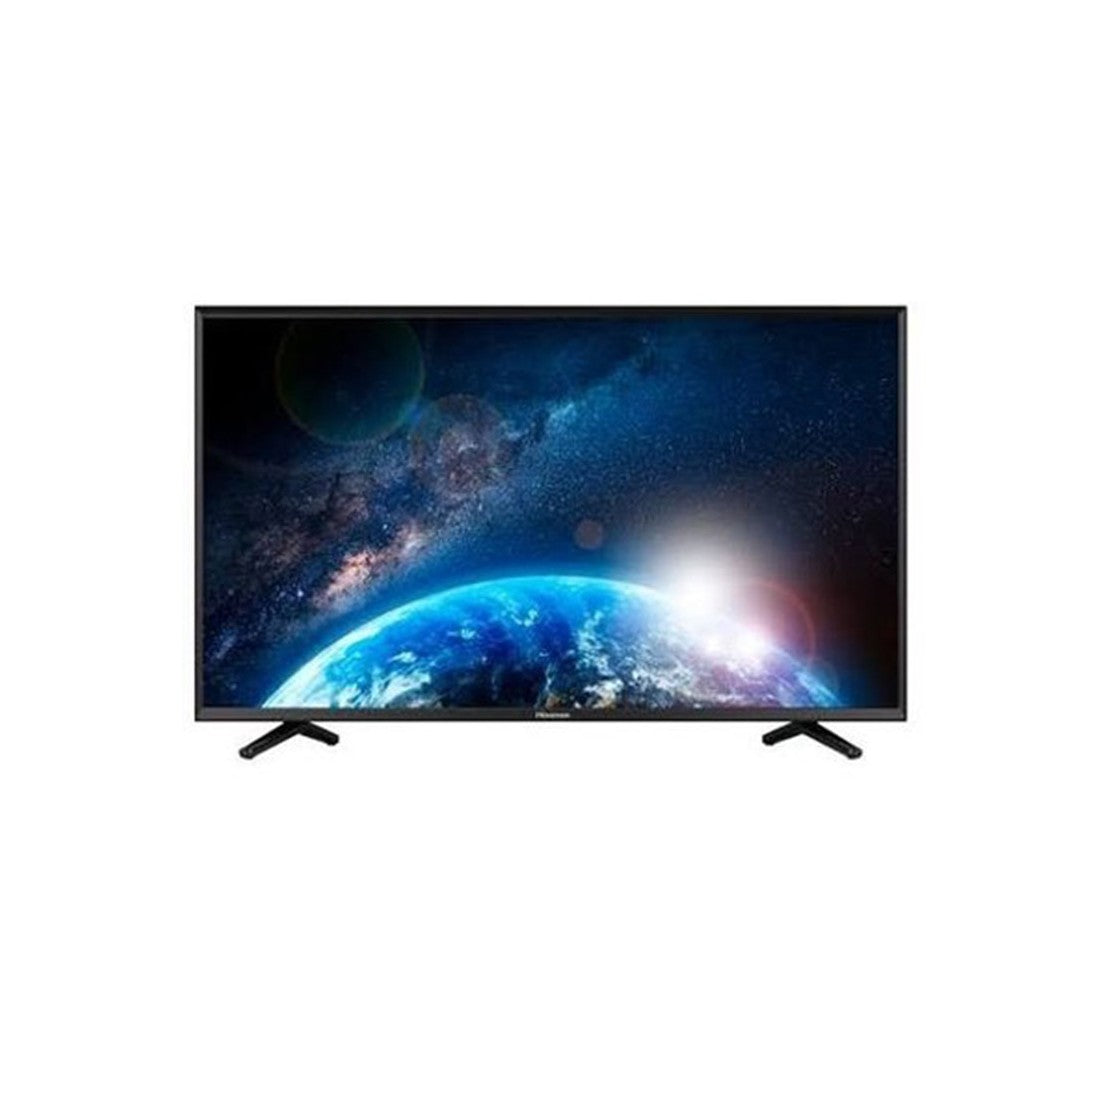 "Hisense 39"" LED Television - TV39N2176 - Dool-X IT Republic"